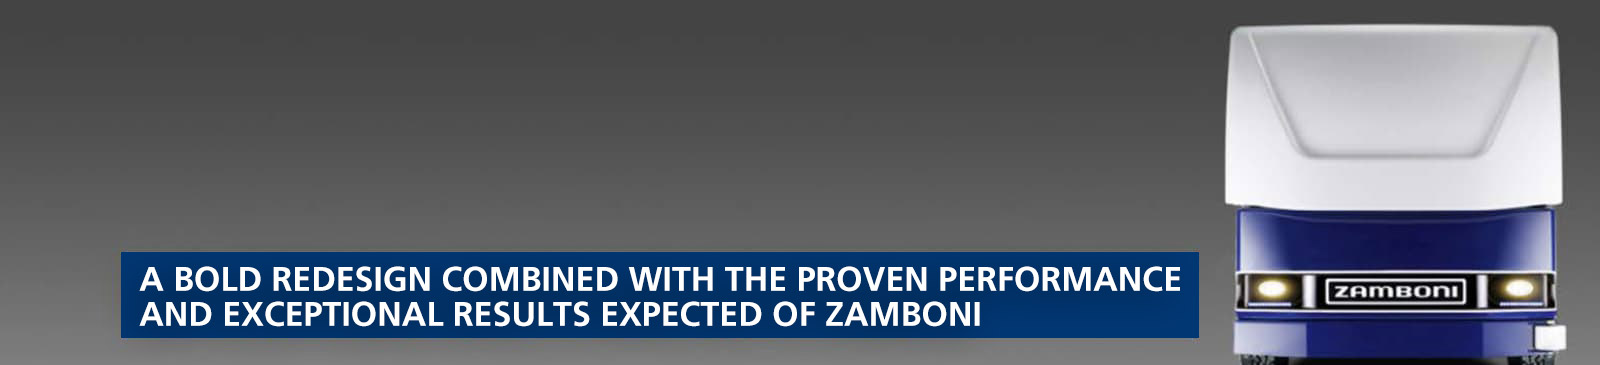 A bold redesign combined with the proven performance and exceptional results expected of Zamboni